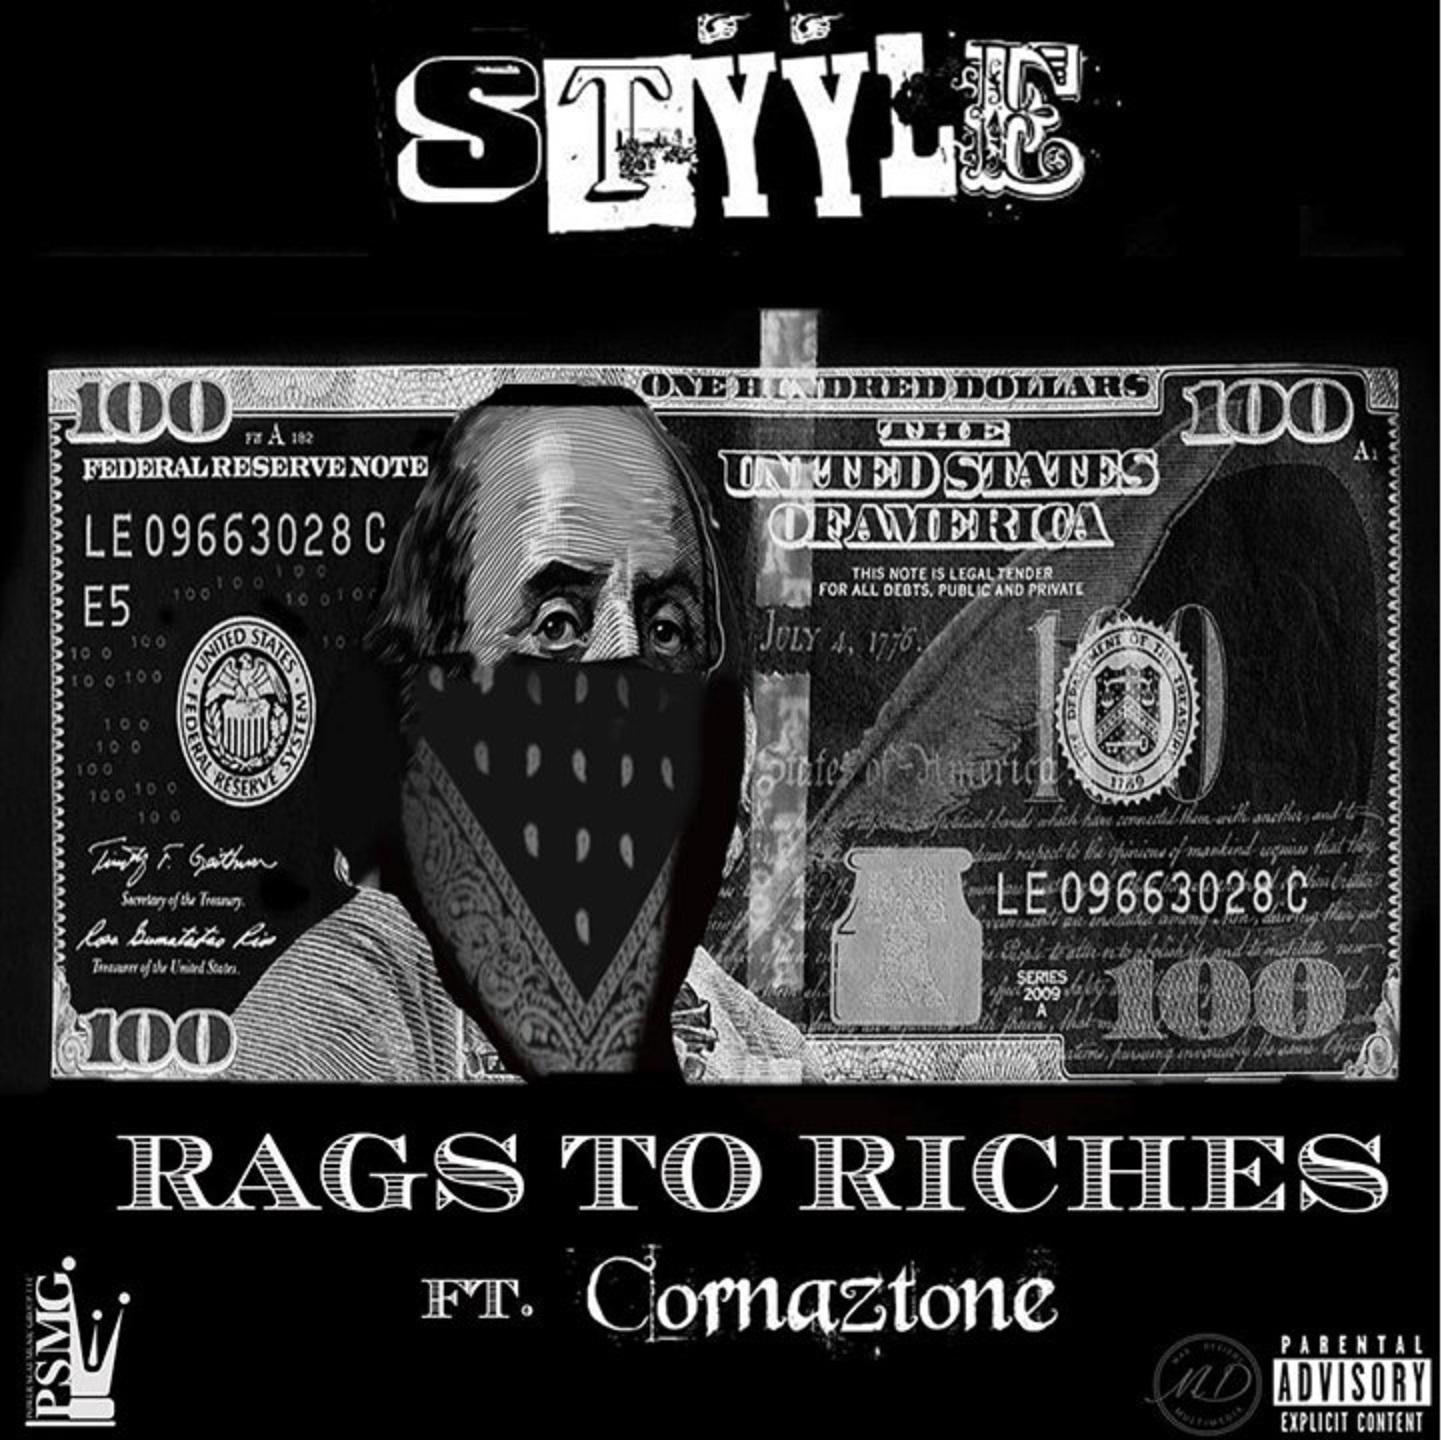 Rags to Riches - Styyle (feat. Cornaztone)